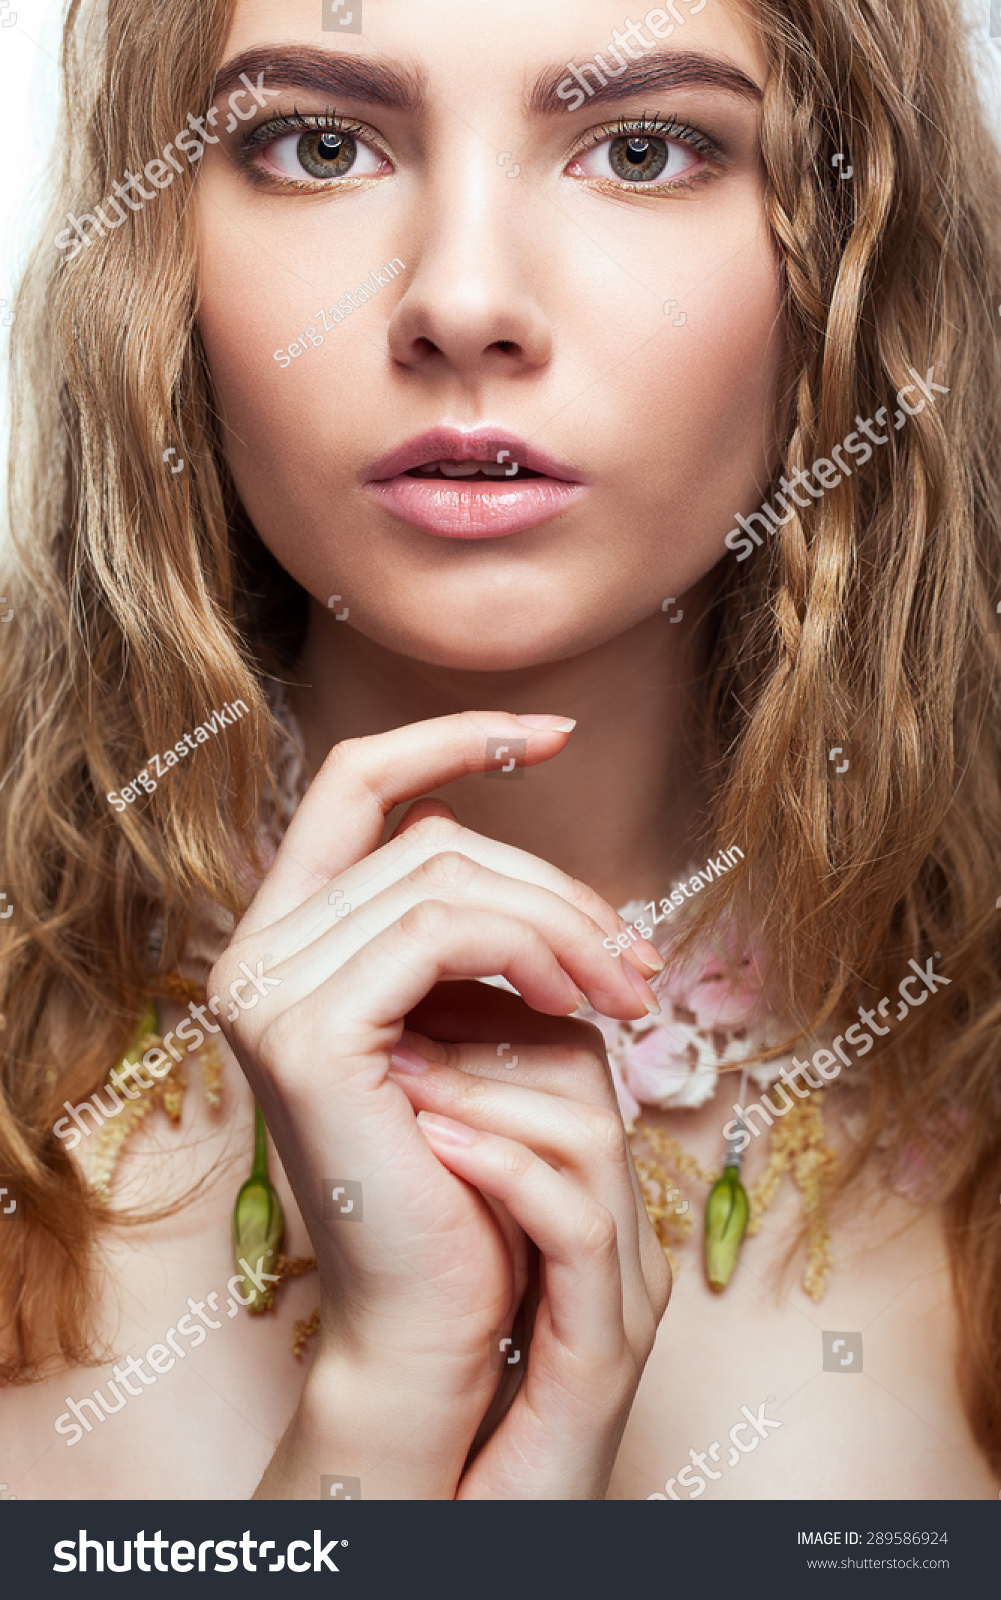 Close-up portrait of teen girl with flower necklace and hand near face